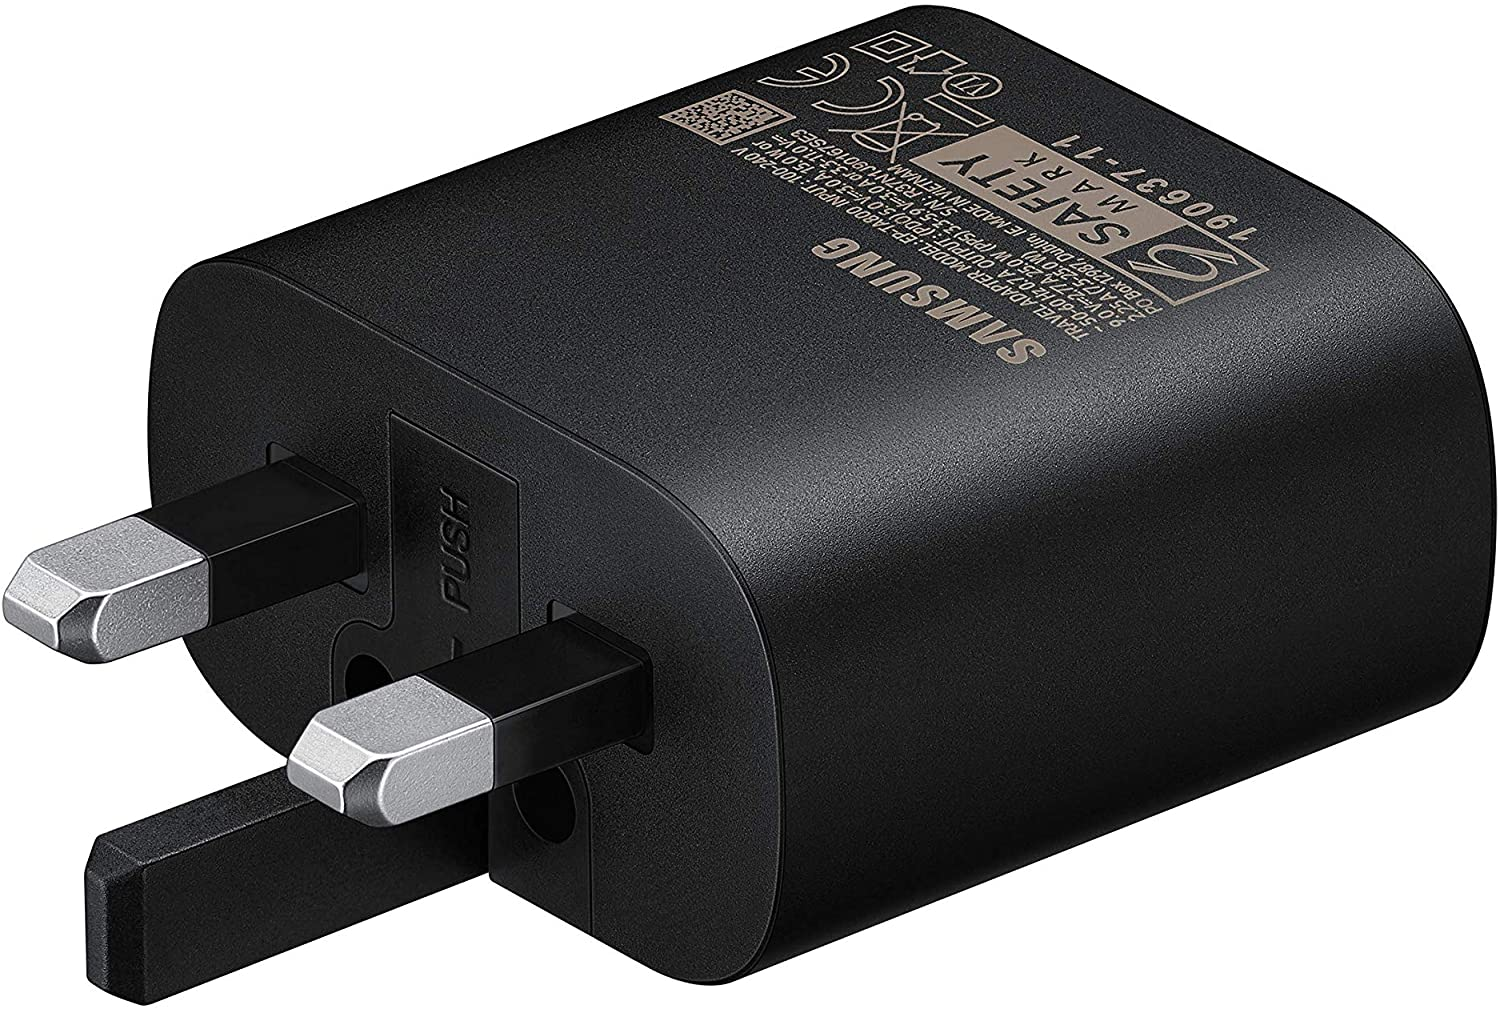 [Deal] Grab Samsung's 25W USB-C Super-Fast Wall Charger for just £12.59 - TalkAndroid.com